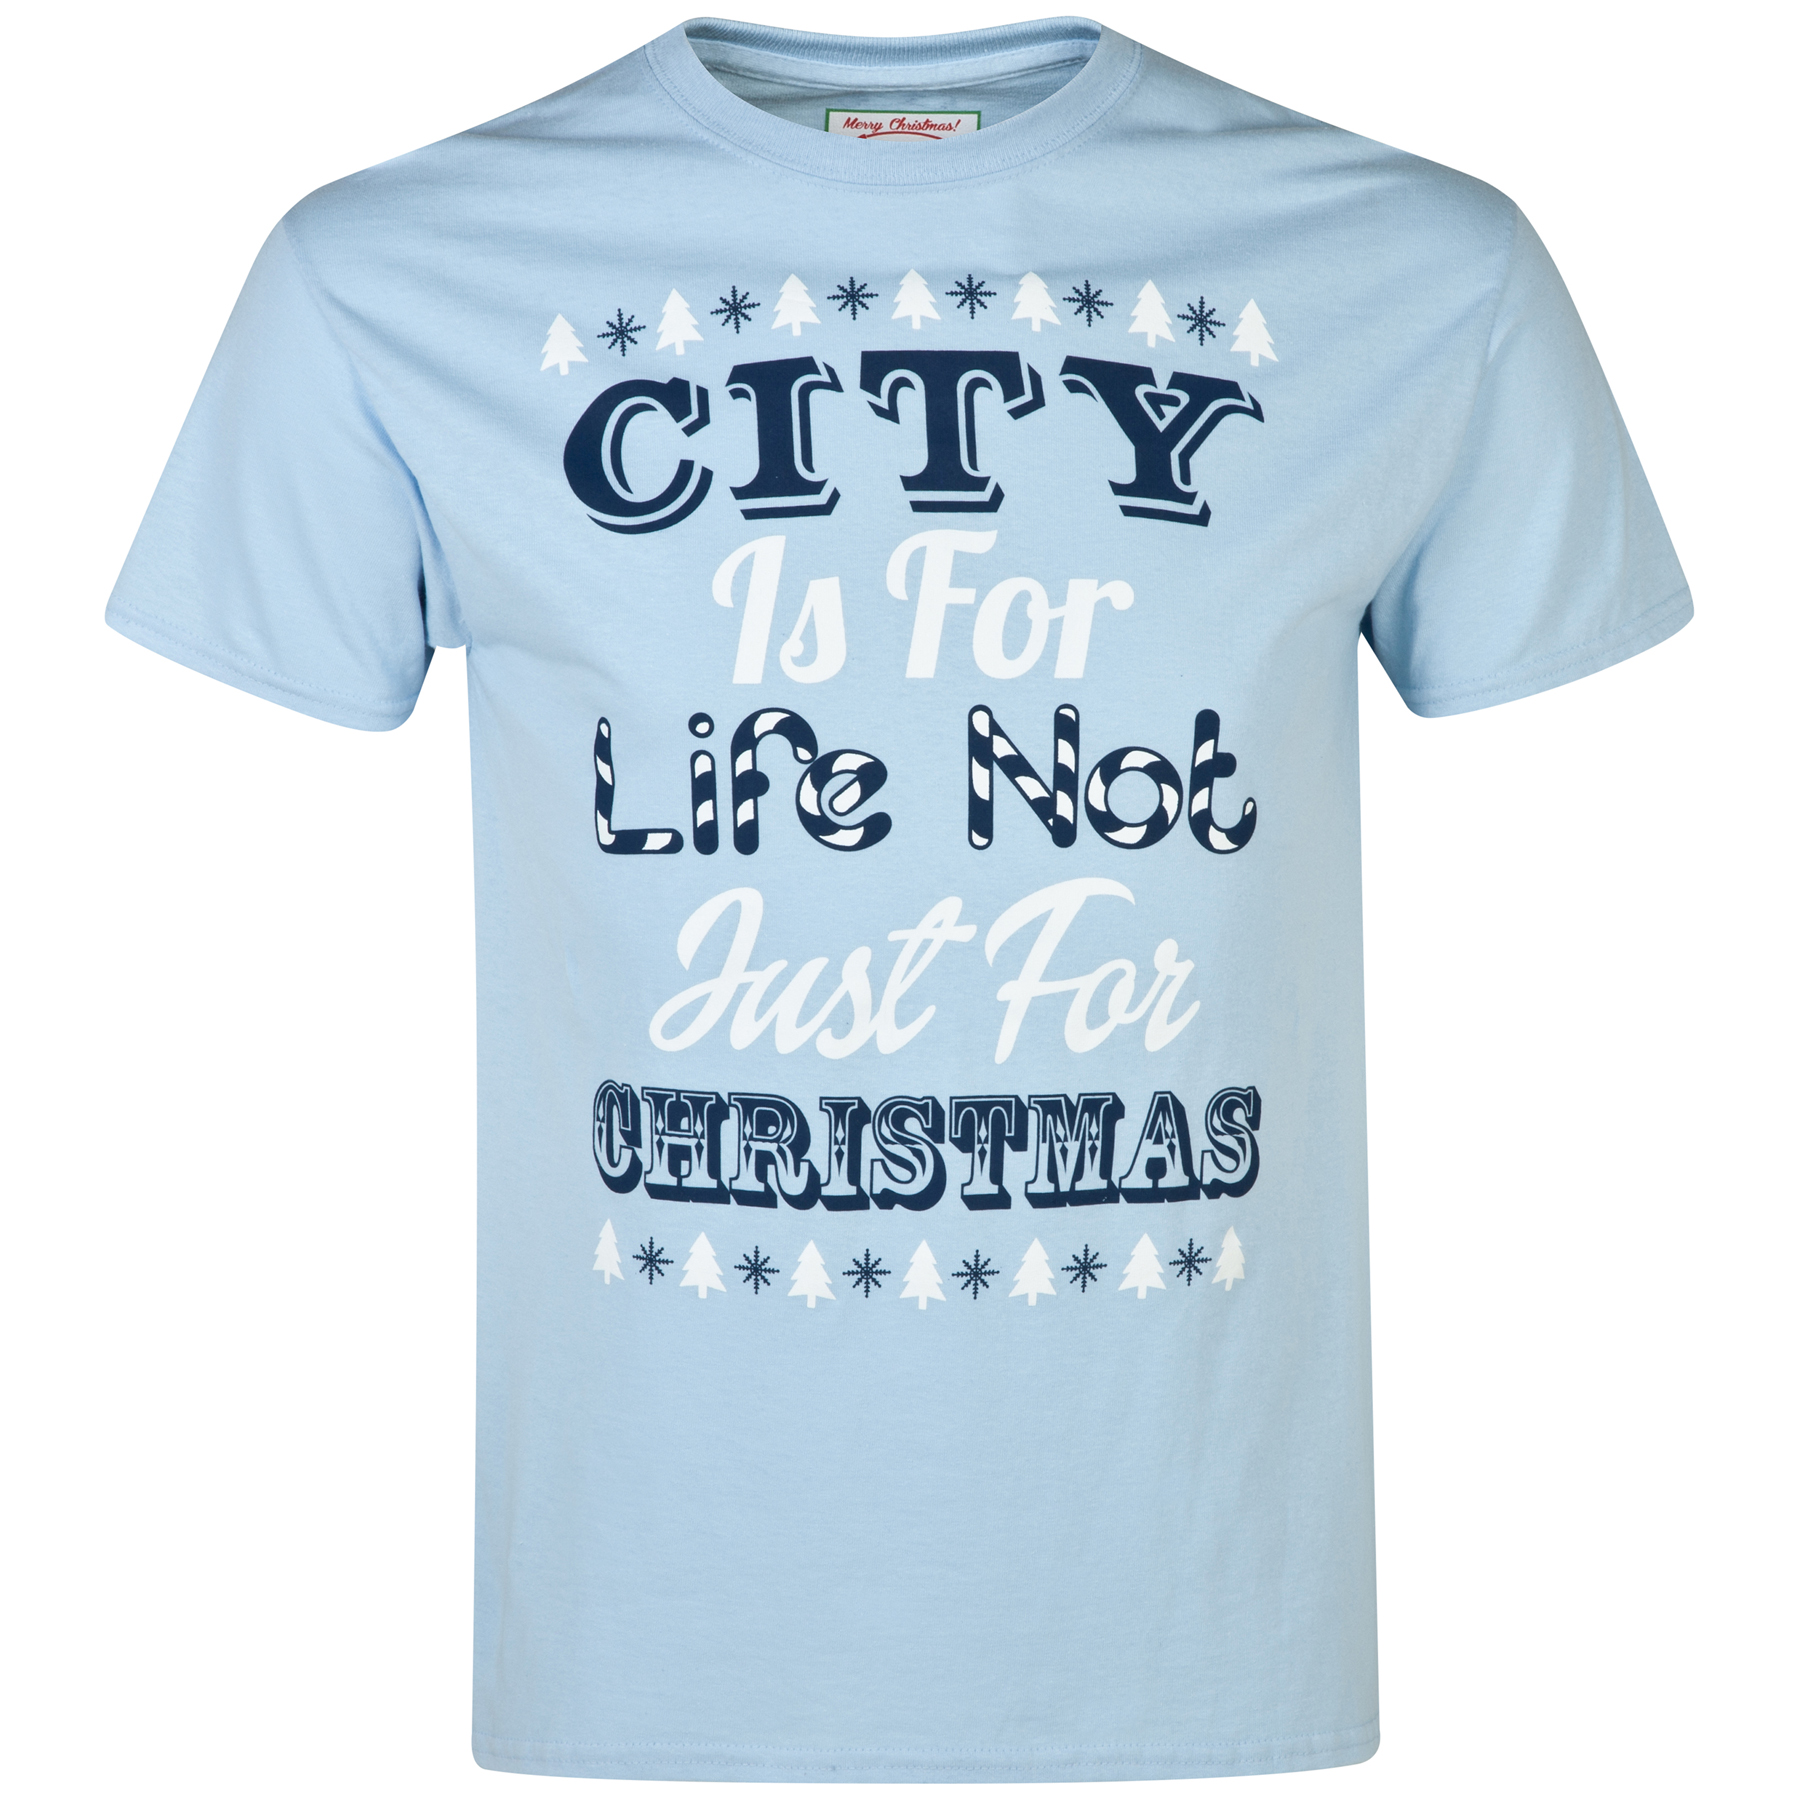 Manchester City 2for20 Life T-Shirt - Sky - Mens